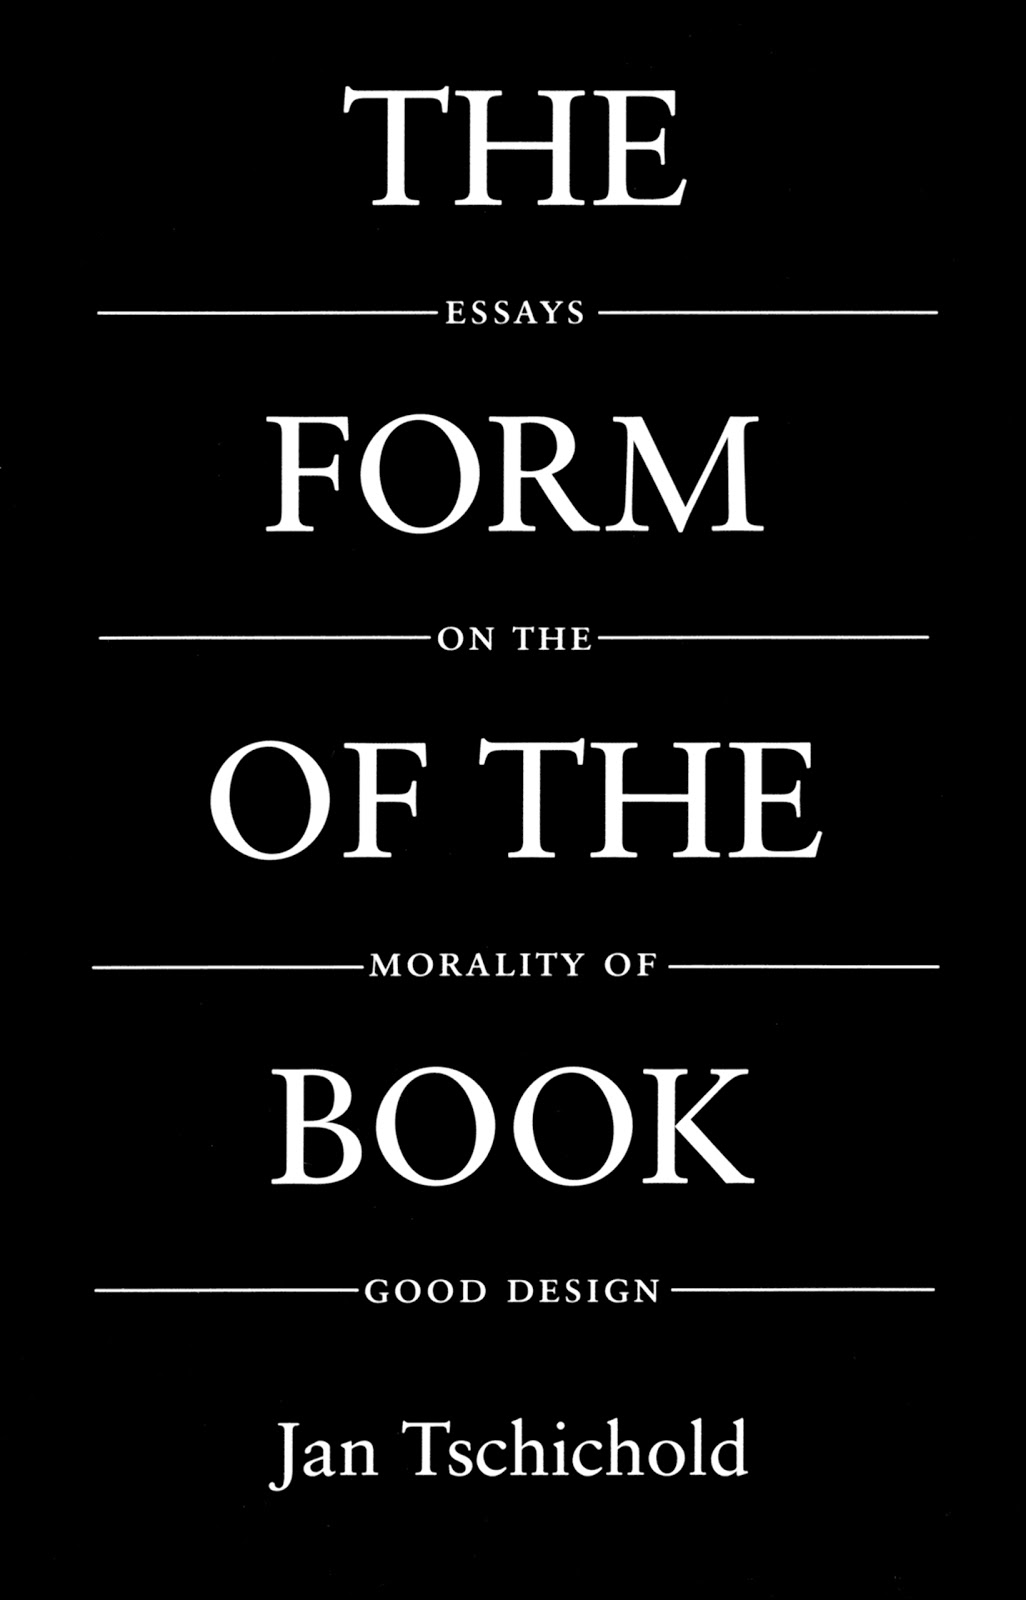 tschichold j the form of a book essays on the morality of tschichold j the form of a book essays on the morality of good design